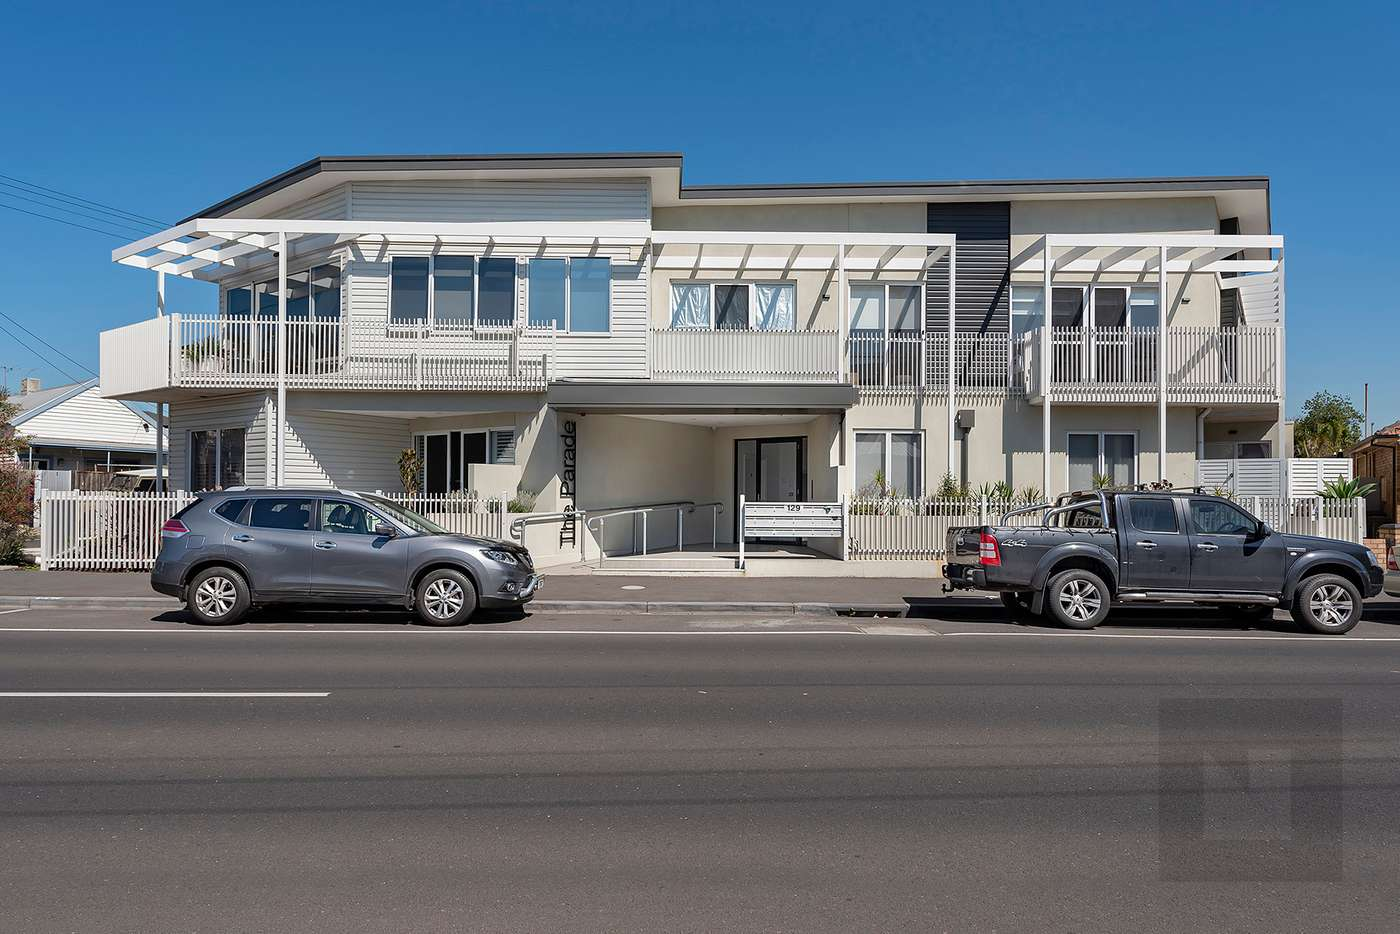 Main view of Homely apartment listing, 108/127 Douglas Parade, Williamstown VIC 3016